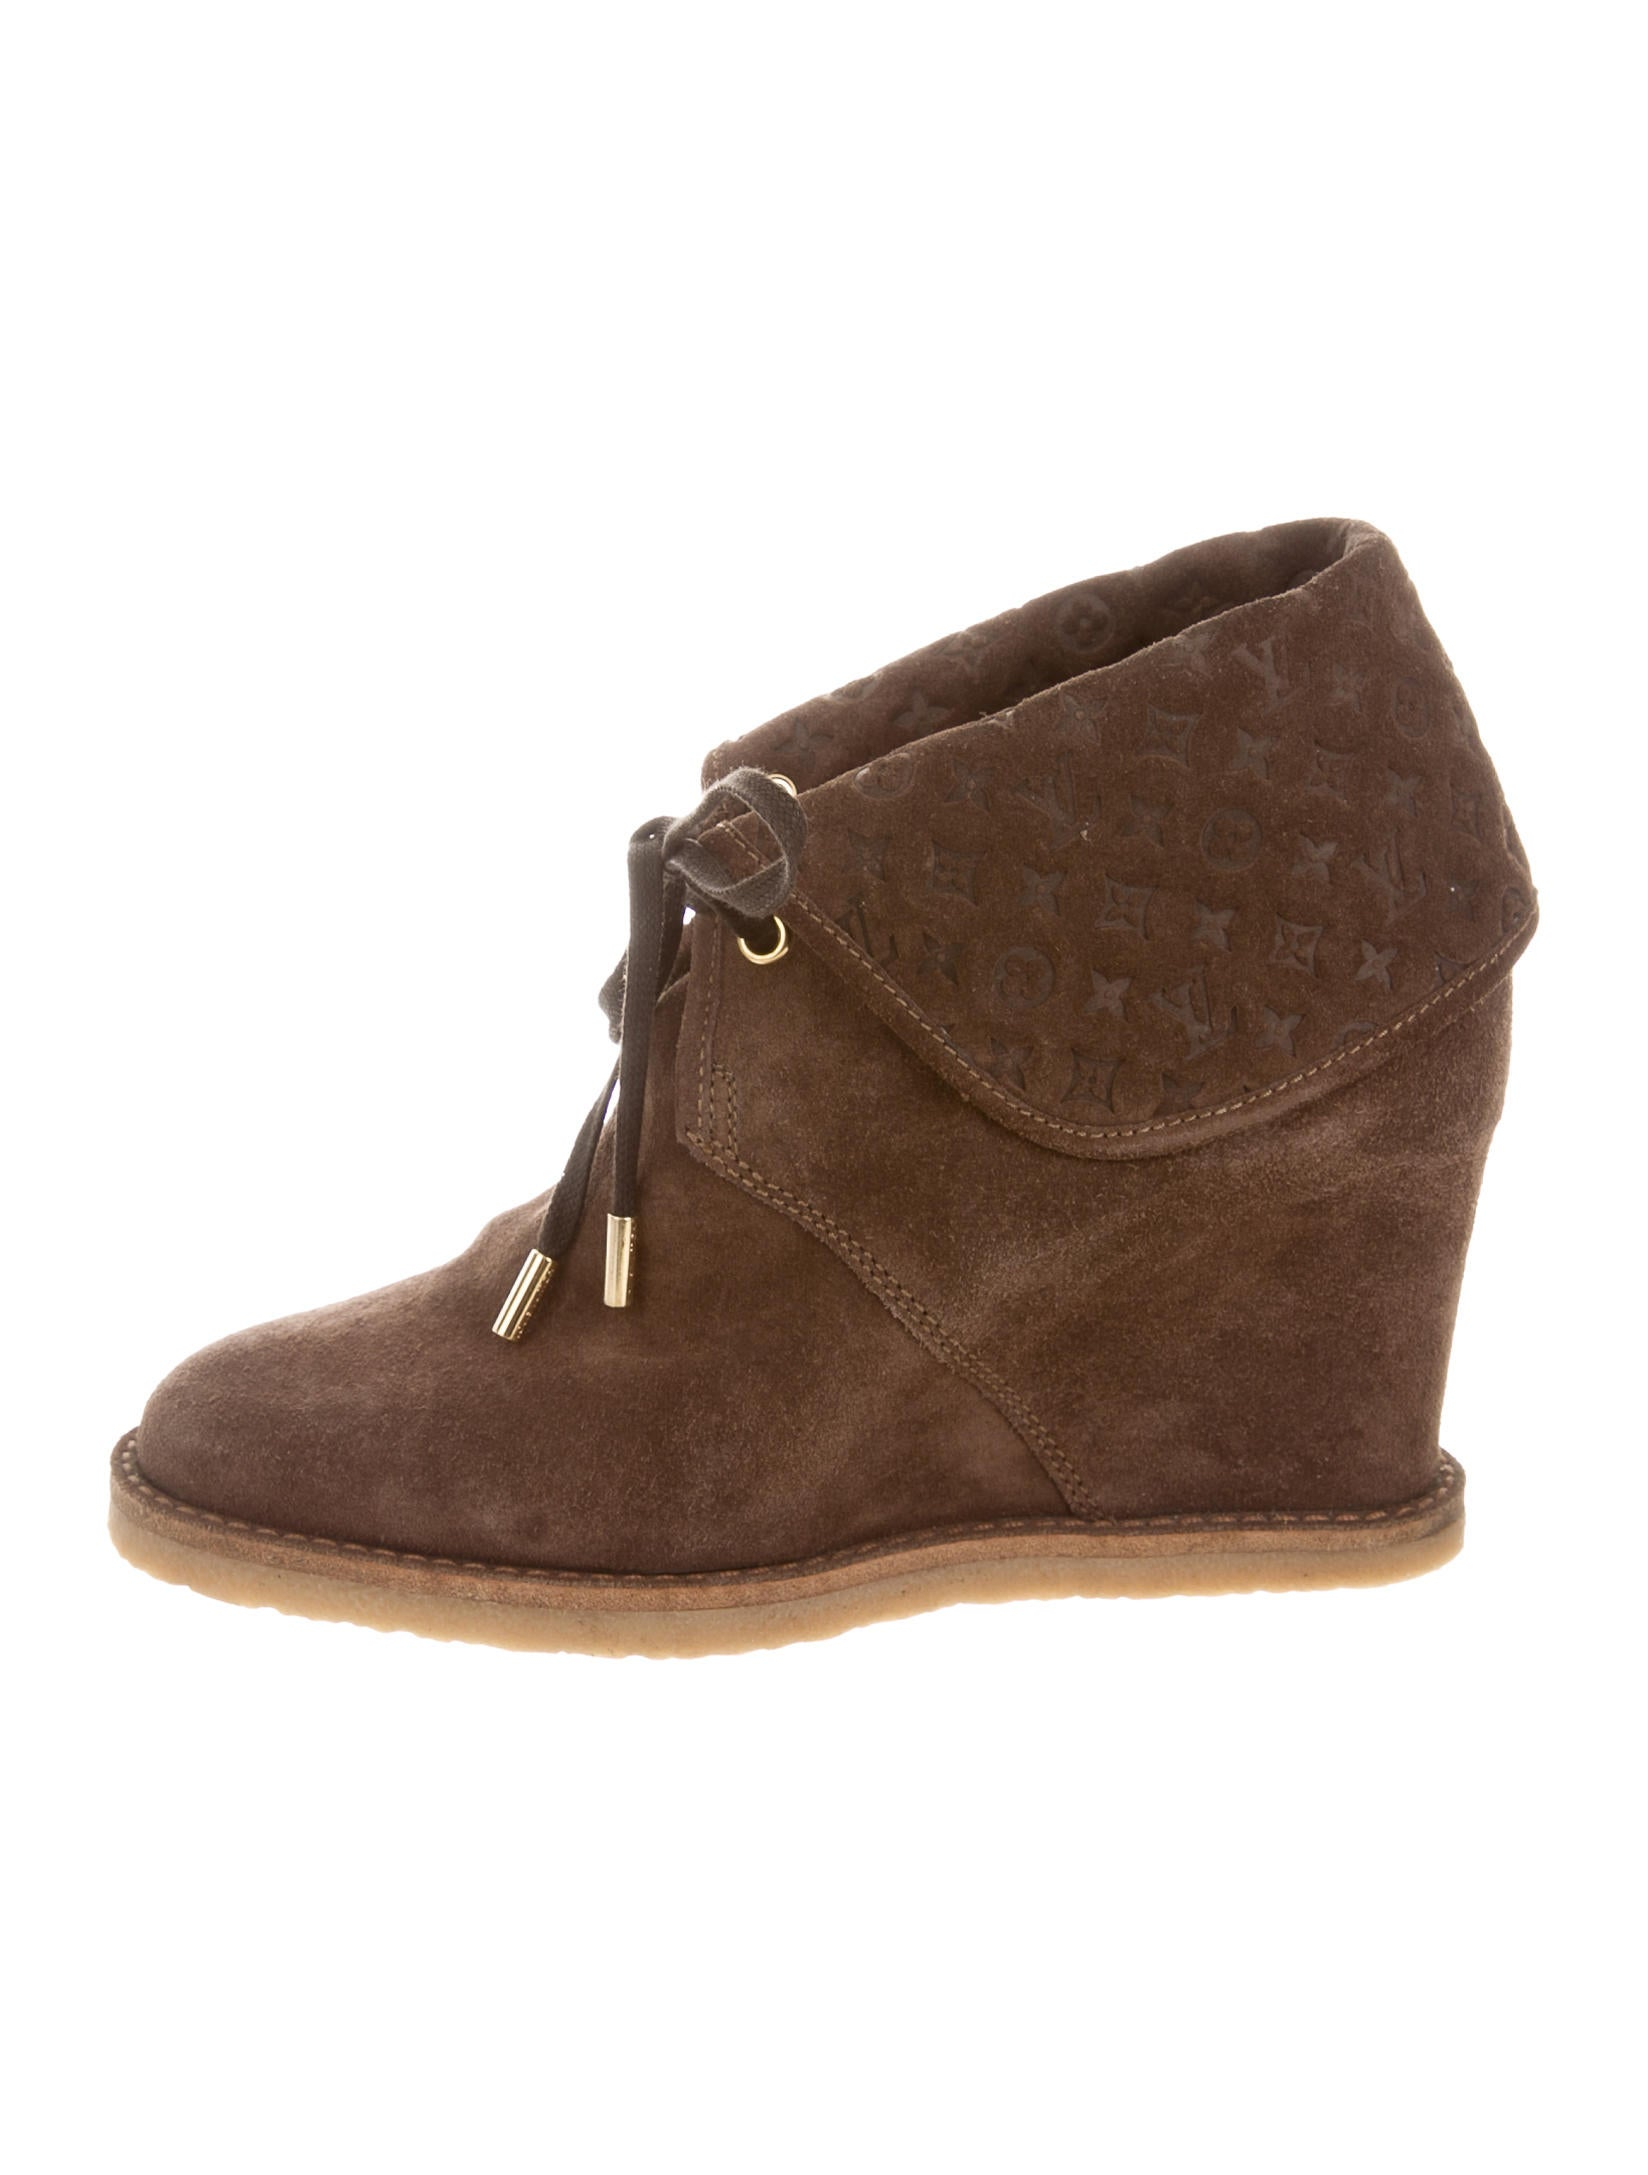 louis vuitton suede wedge booties shoes lou88695 the